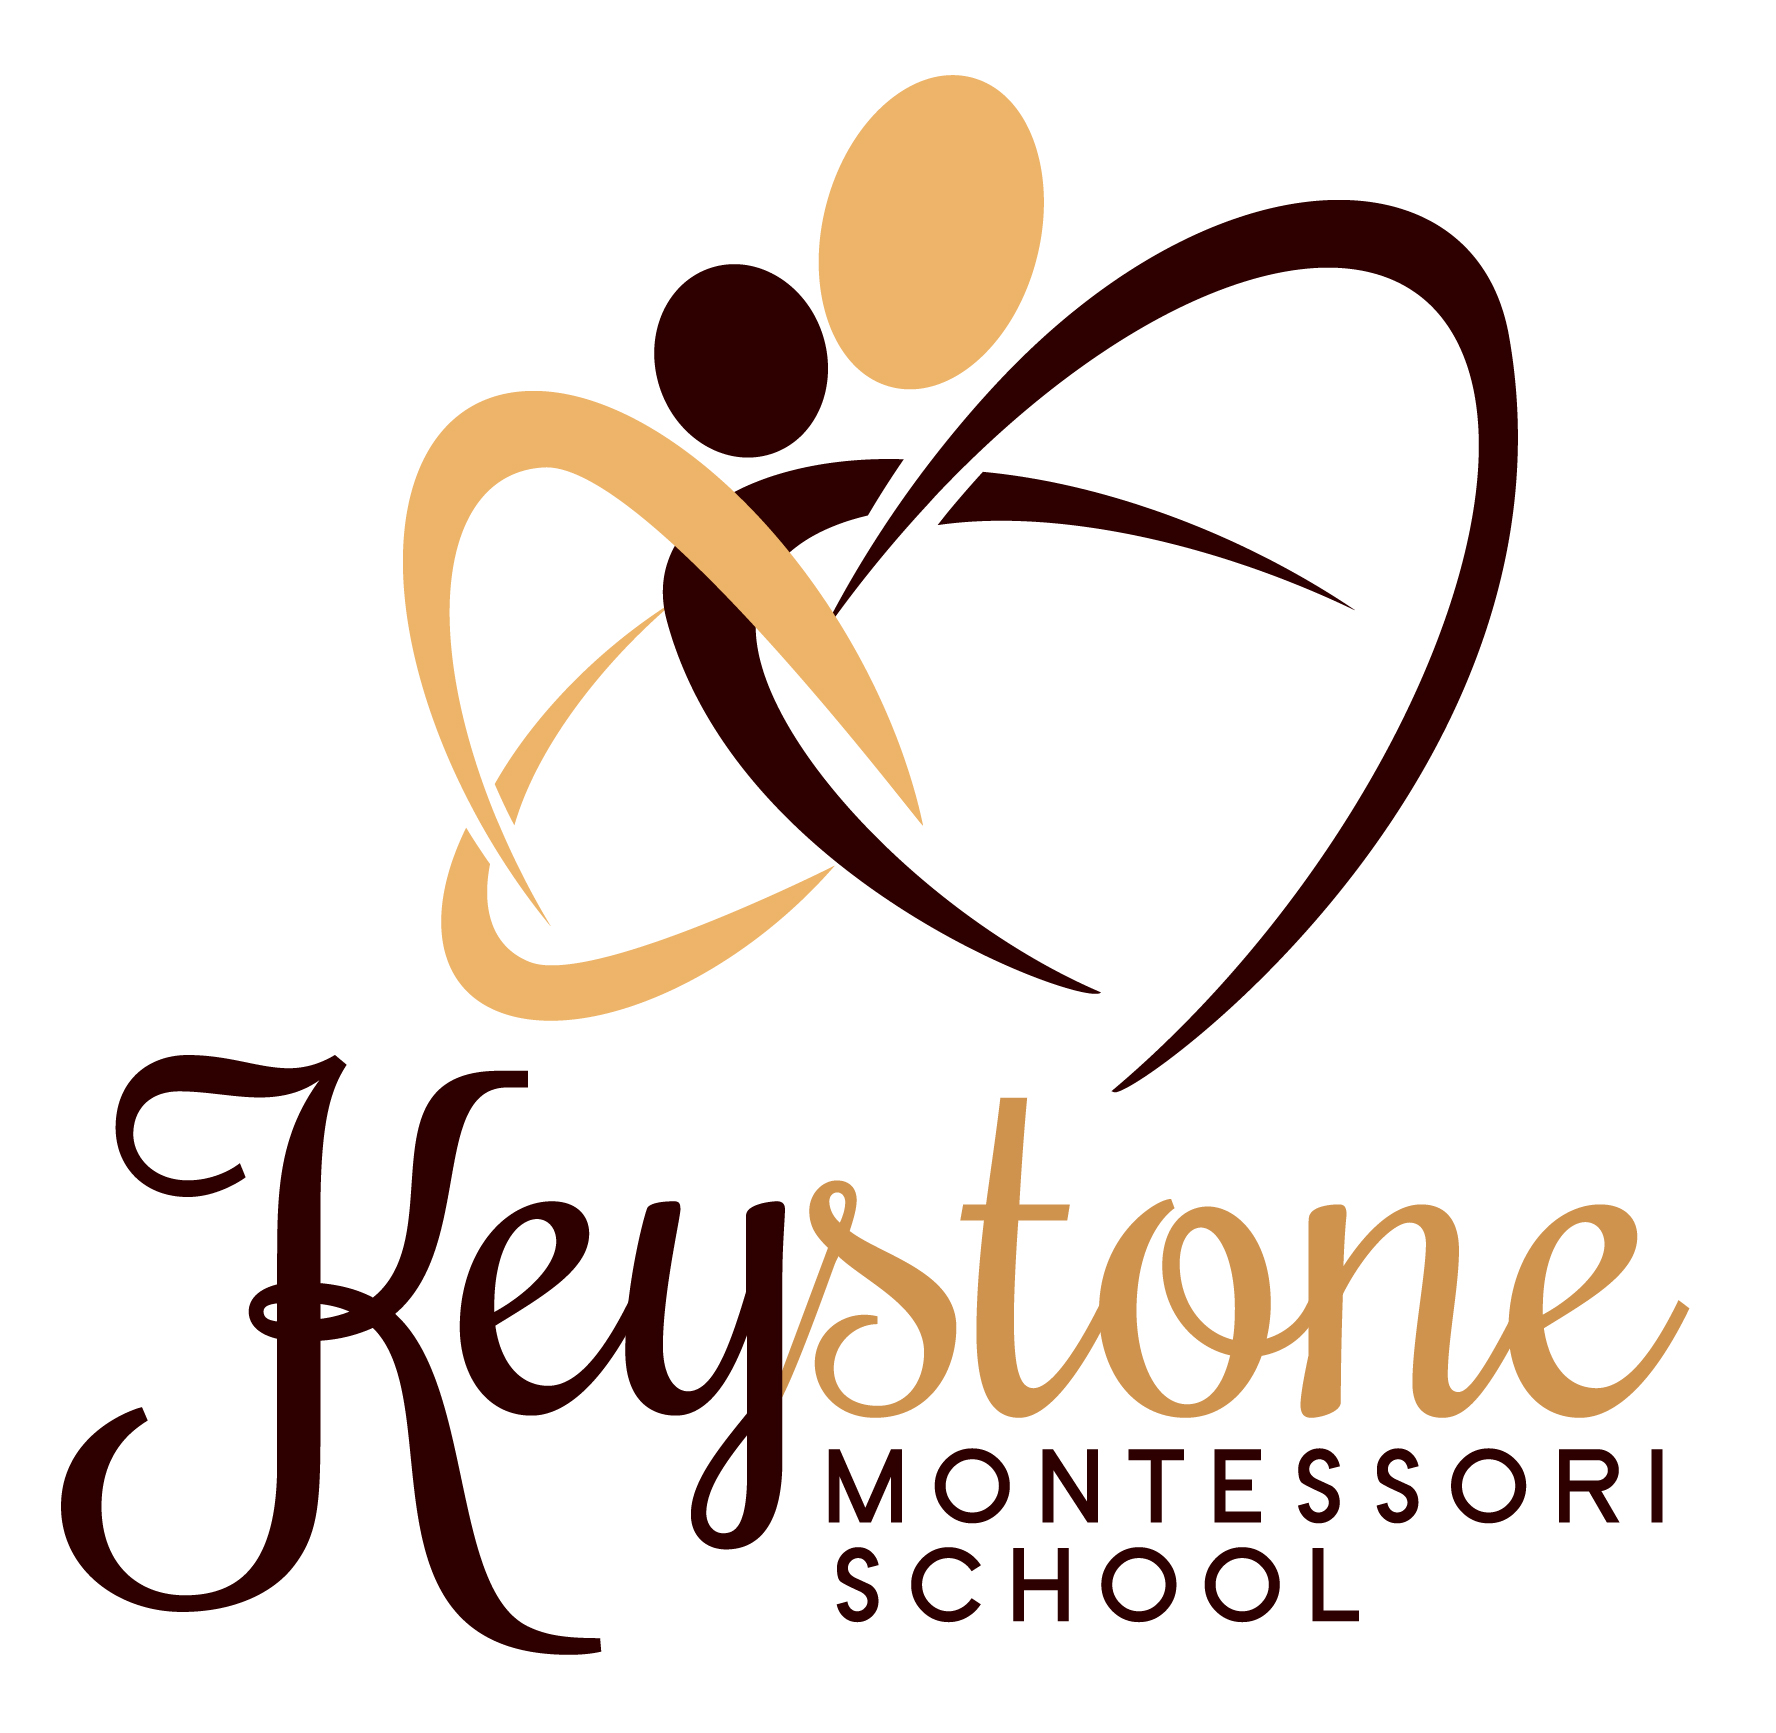 Keystone Montessori School